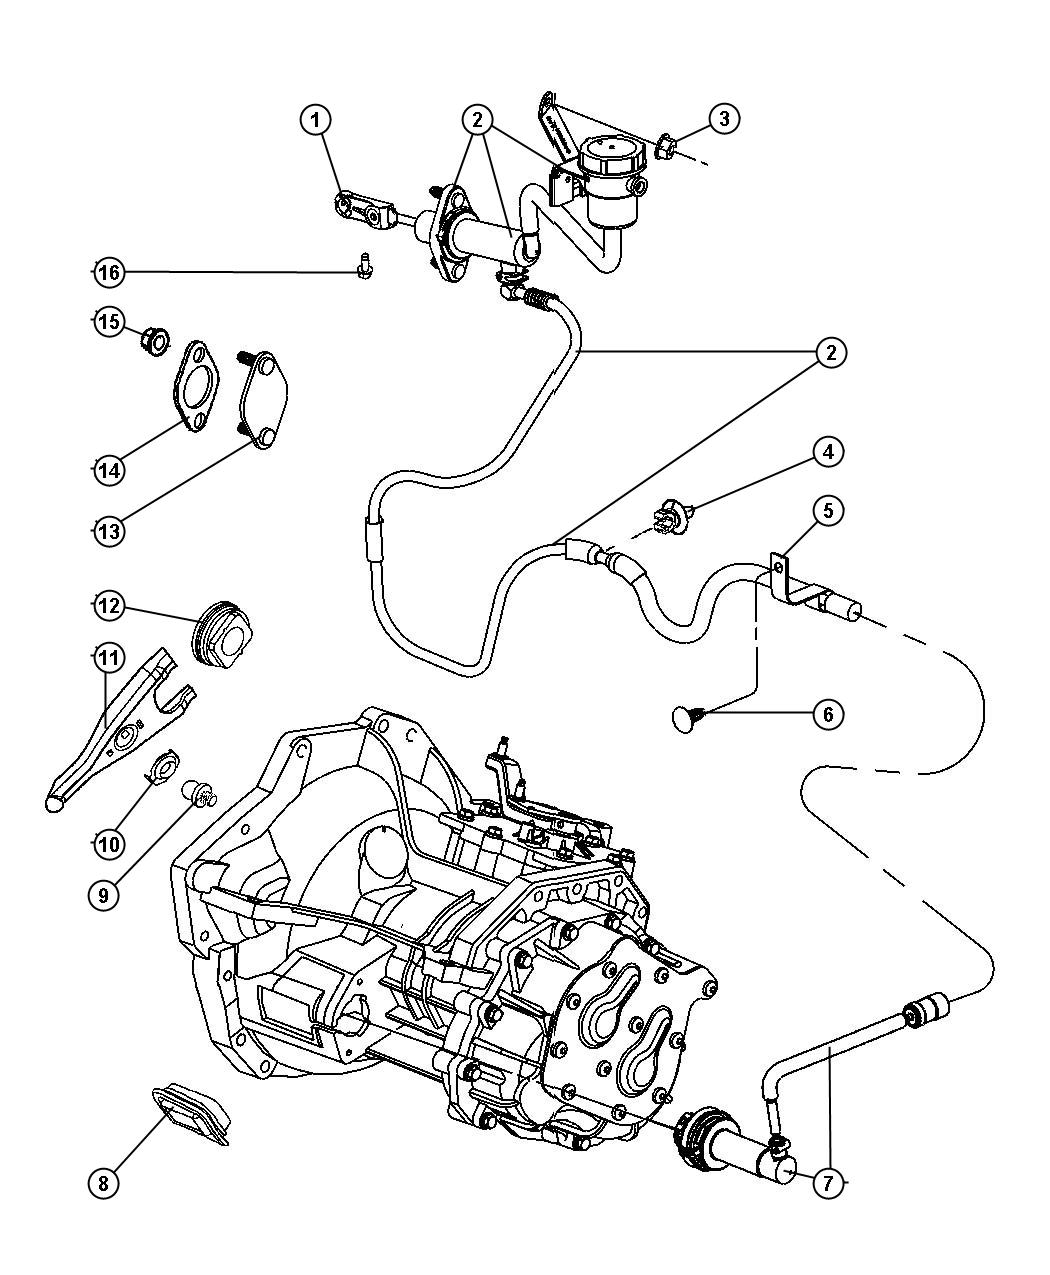 Camaro Wiring Harness Diagram